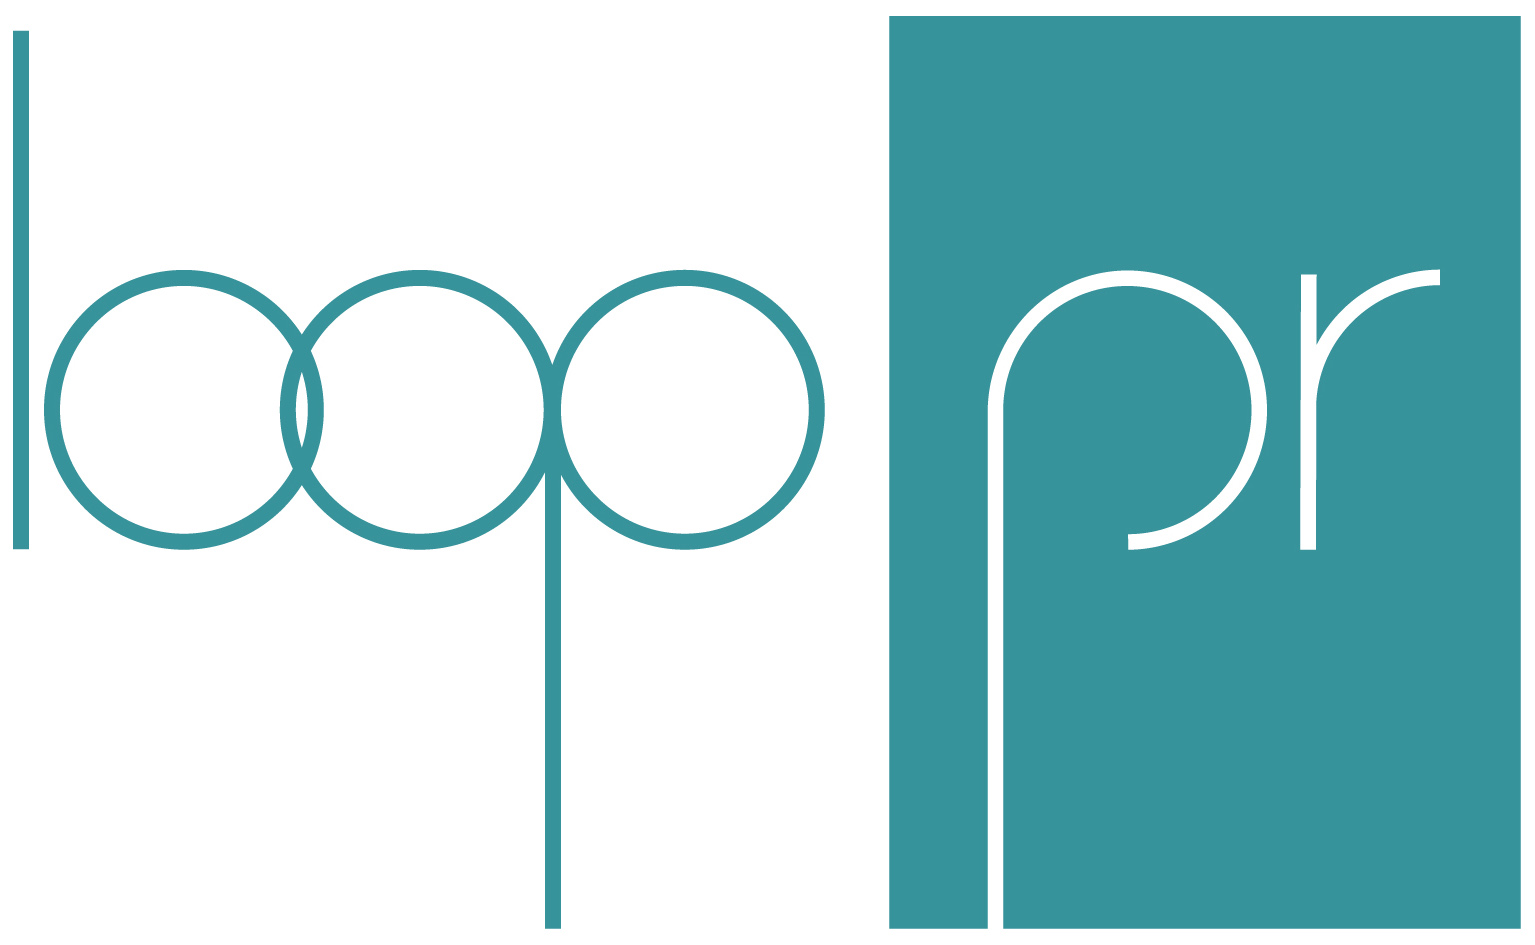 Loop PR LTD